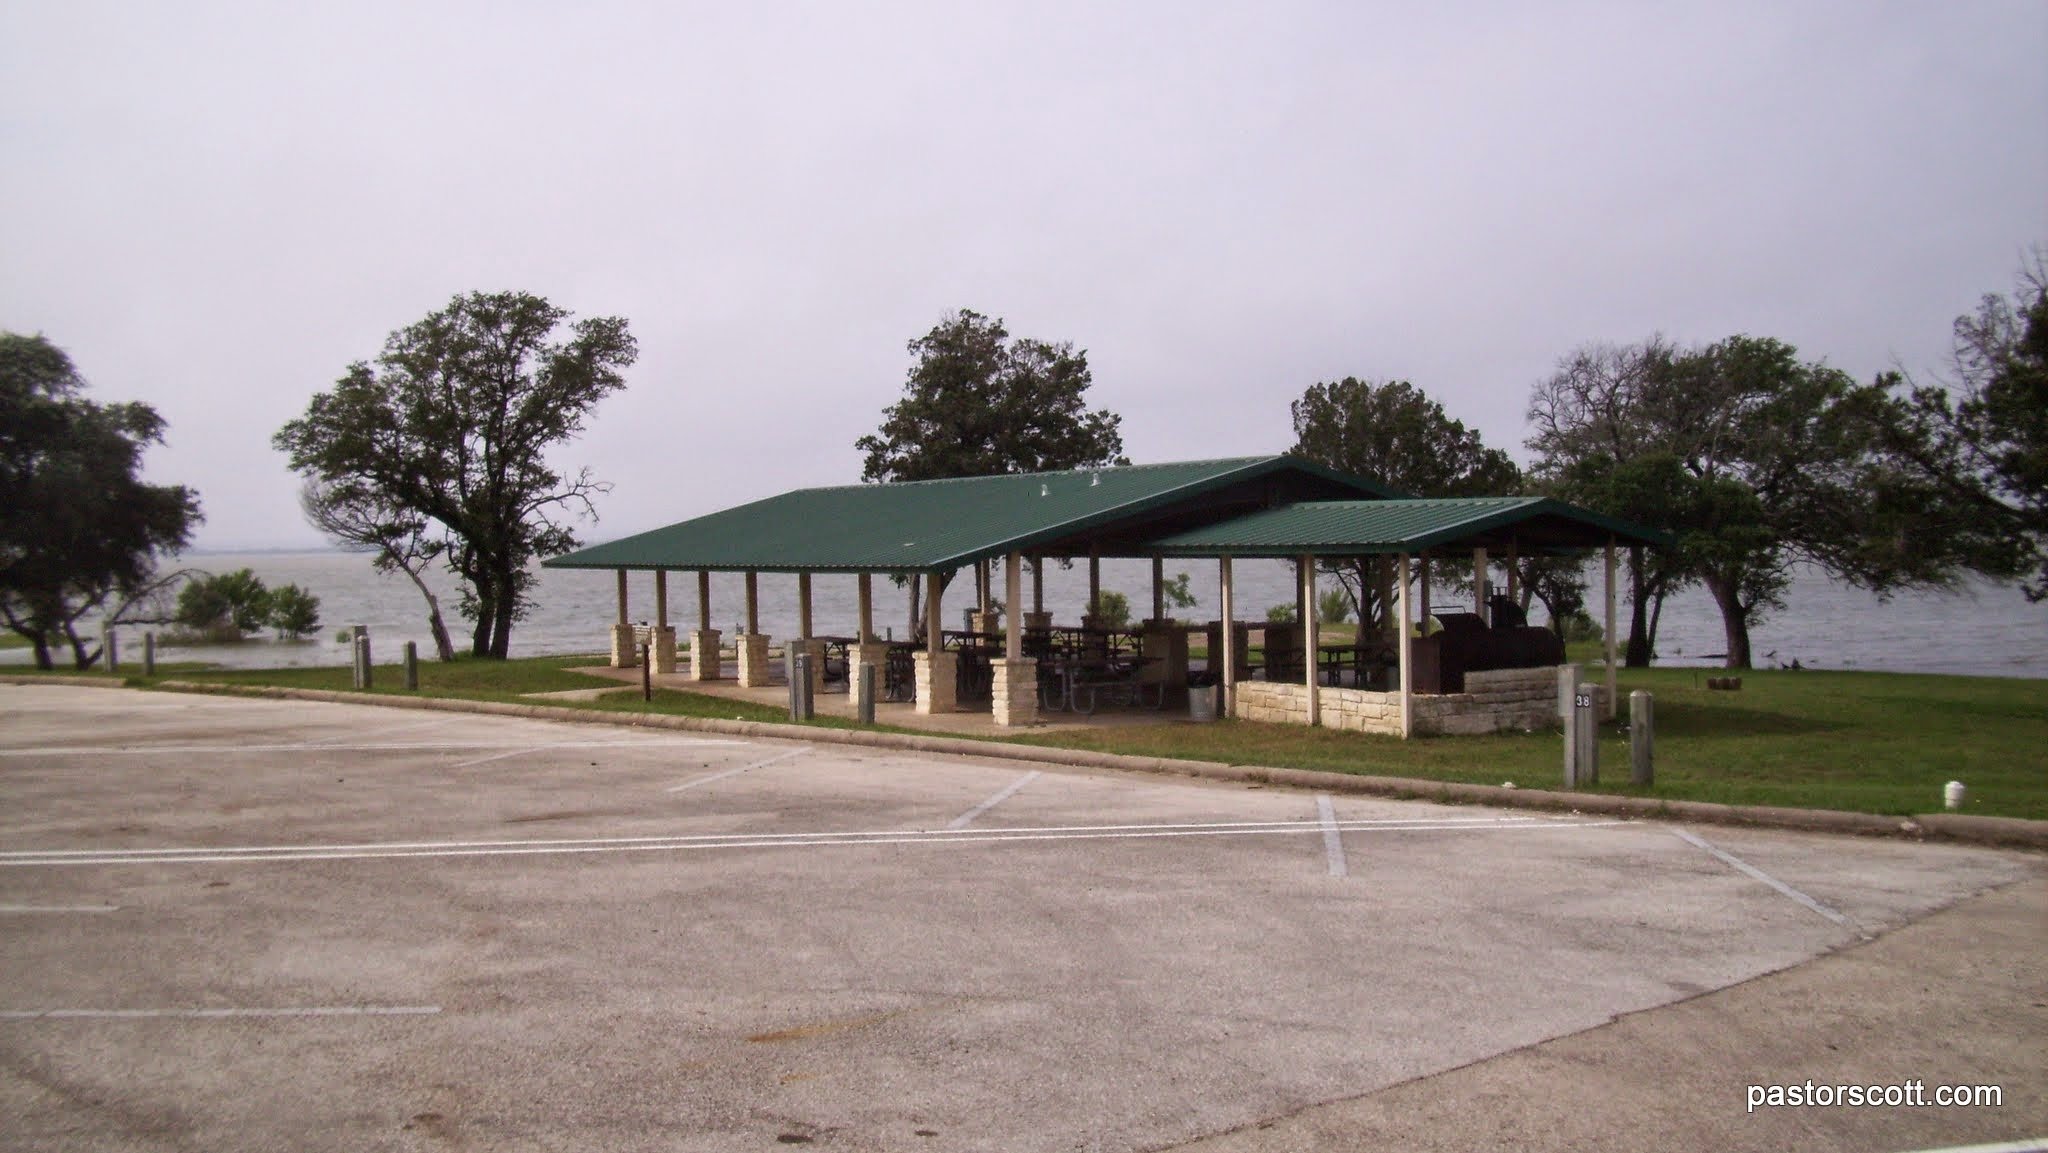 Campground Review Airport Park Coe Waco Tx Here And There